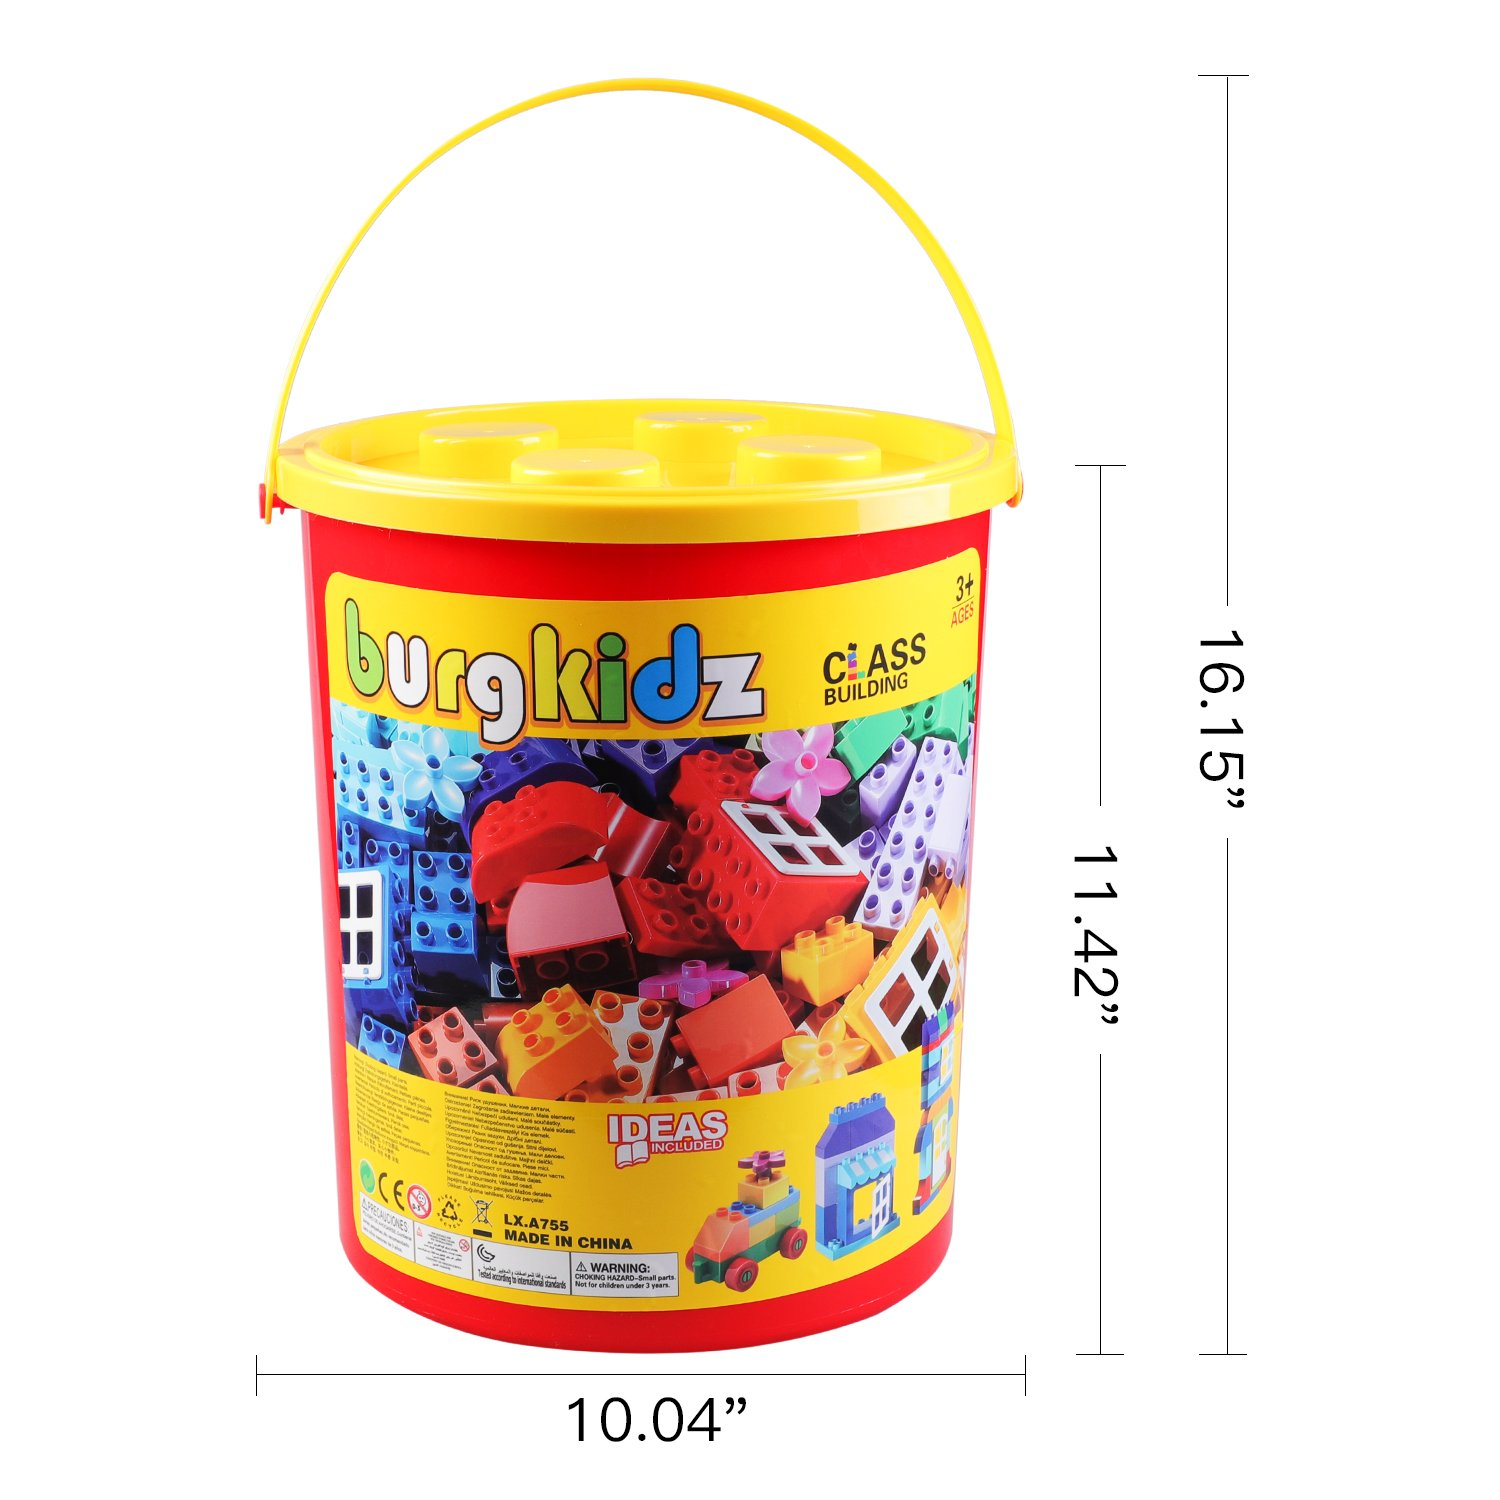 burgkidz Big Building Block Sets - 214 Pieces Toddler Educational Toy Classic Large Sizes Building Blocks Bricks - 13 Fun Shapes and Storage Bucket - Compatible with All Major Brands by burgkidz (Image #5)